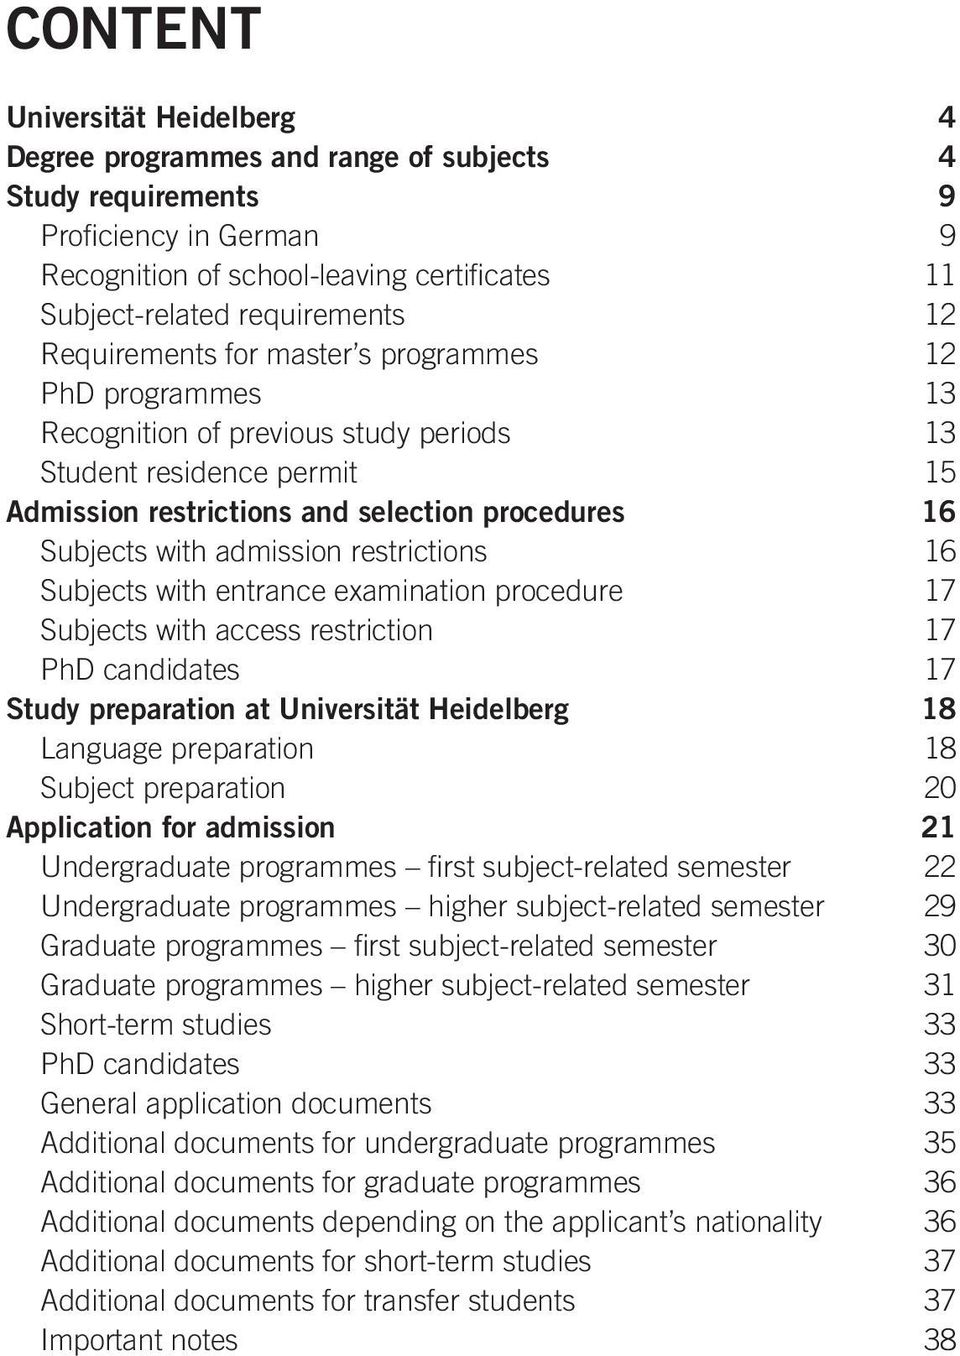 admission restrictions 16 Subjects with entrance examination procedure 17 Subjects with access restriction 17 PhD candidates 17 Study preparation at Universität Heidelberg 18 Language preparation 18